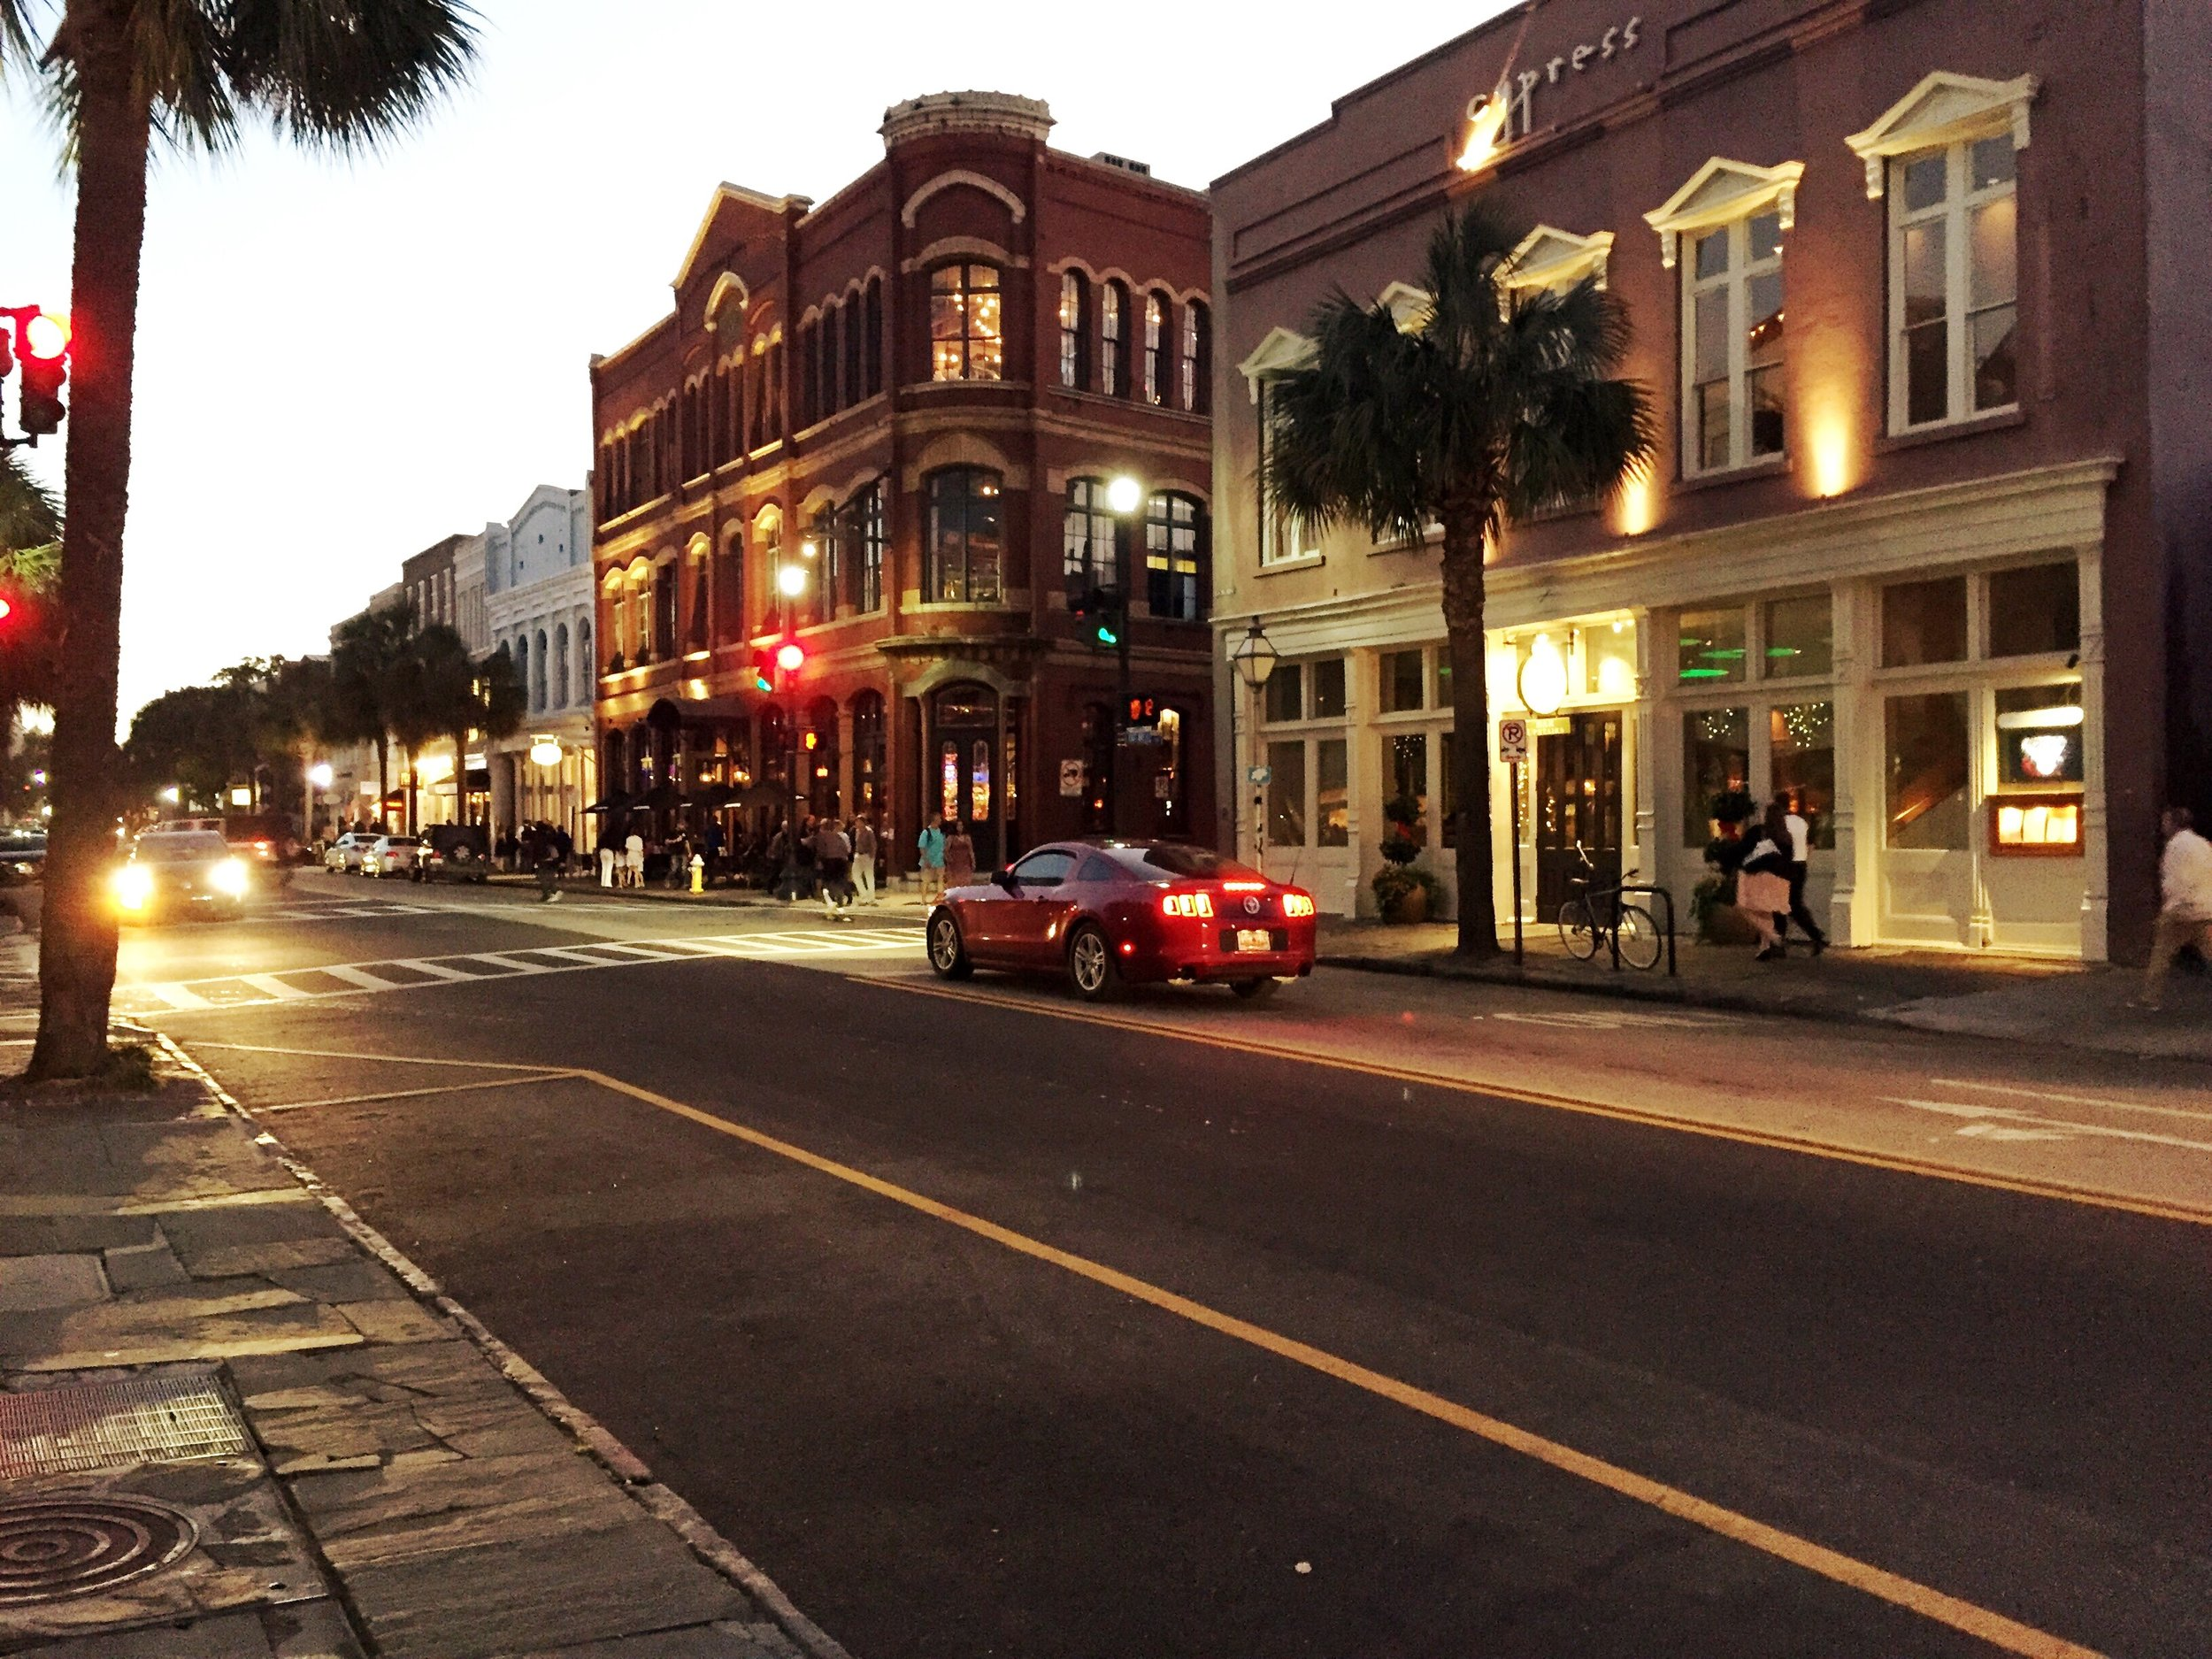 East Bay Street, Charleston, SC